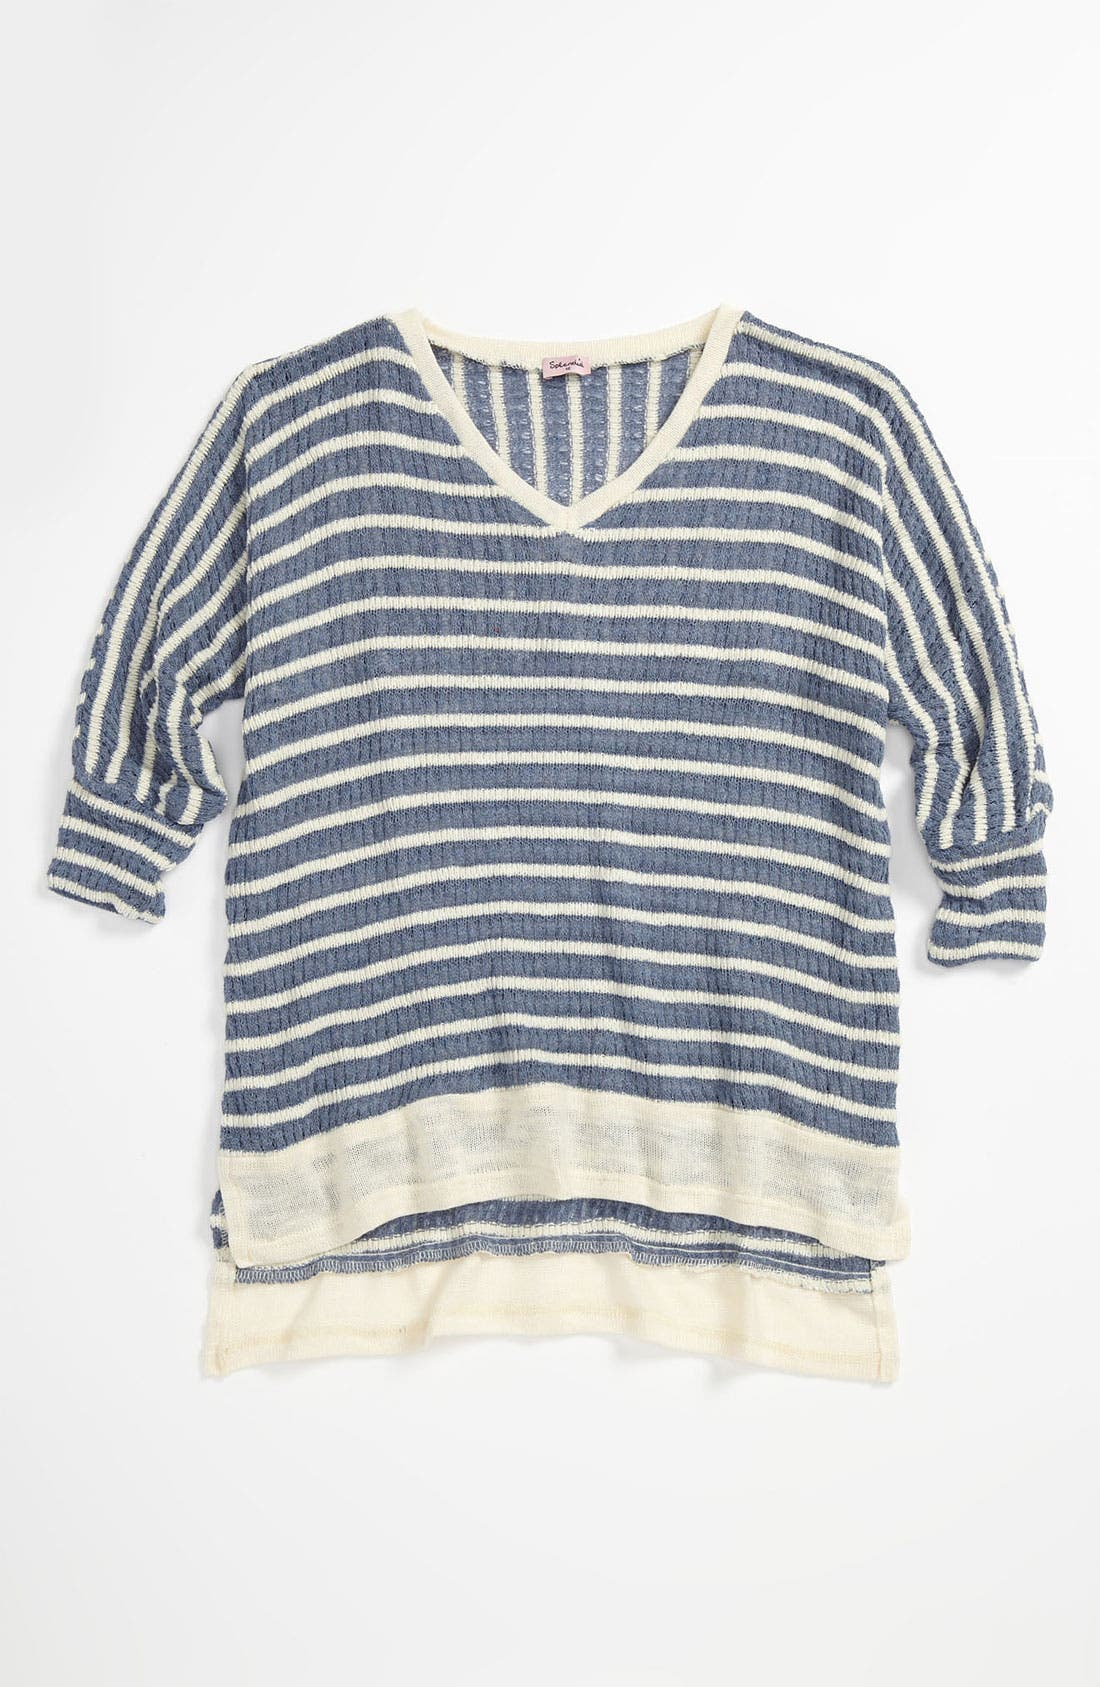 Alternate Image 1 Selected - Splendid 'Panama' Stripe Top (Big Girls)